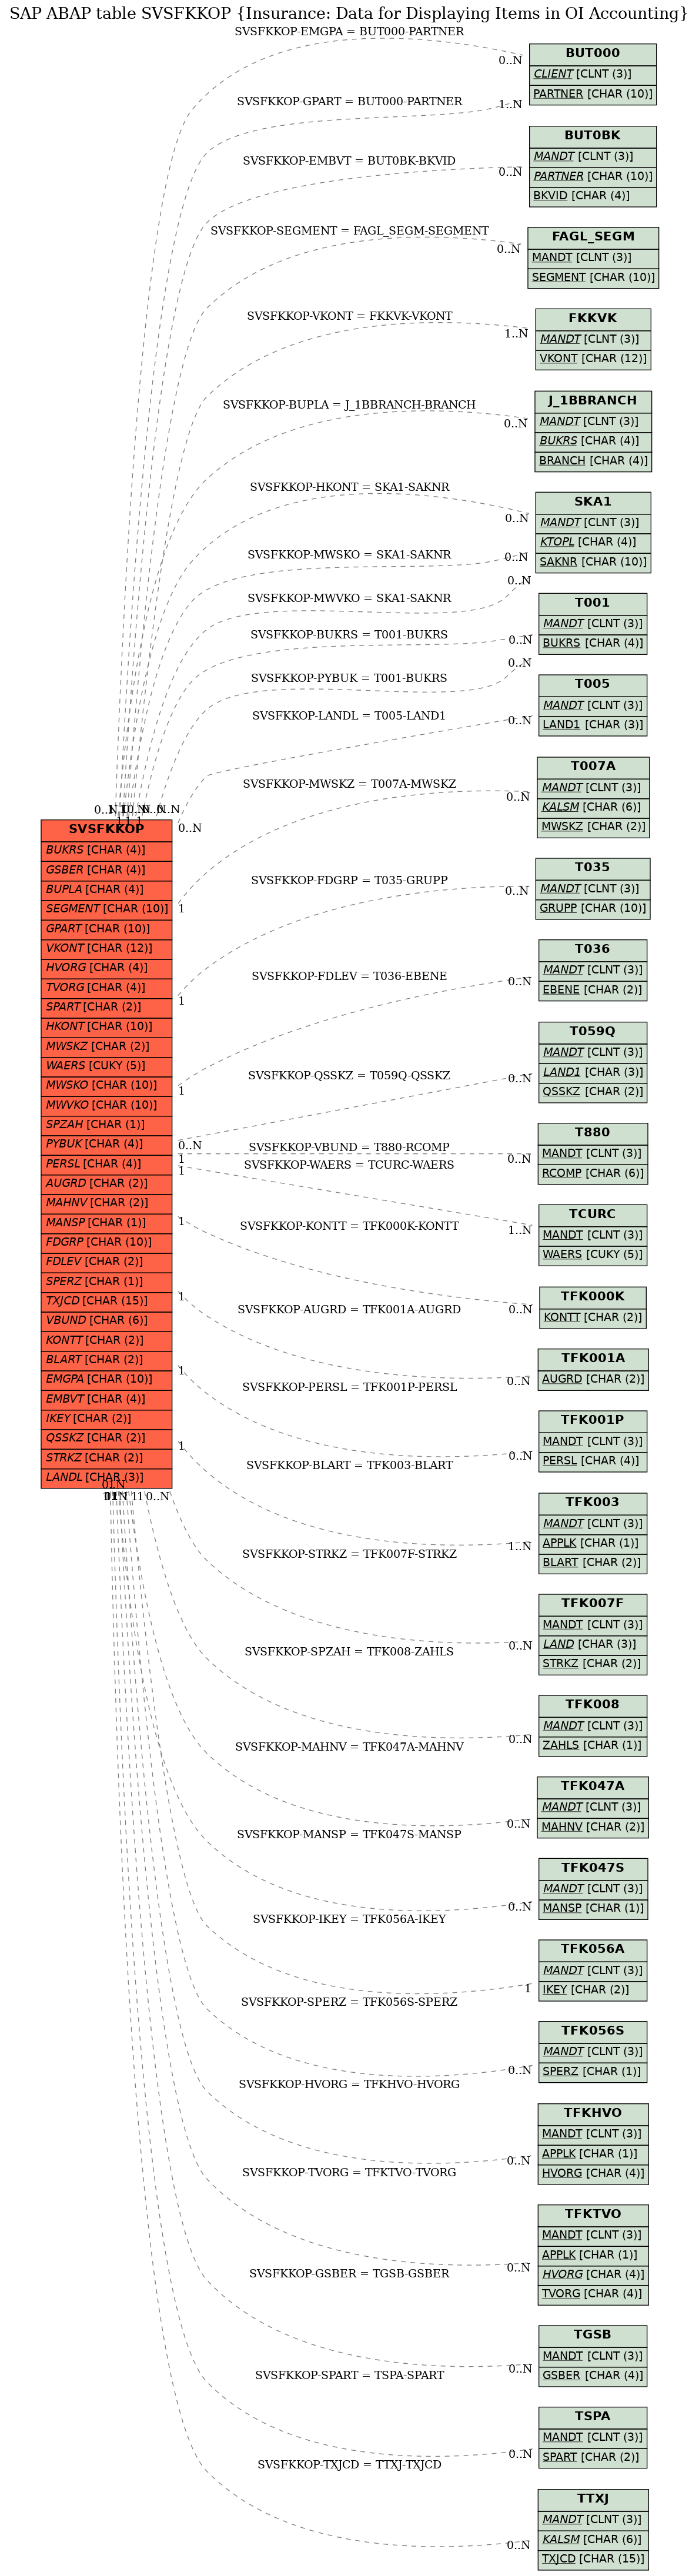 E-R Diagram for table SVSFKKOP (Insurance: Data for Displaying Items in OI Accounting)